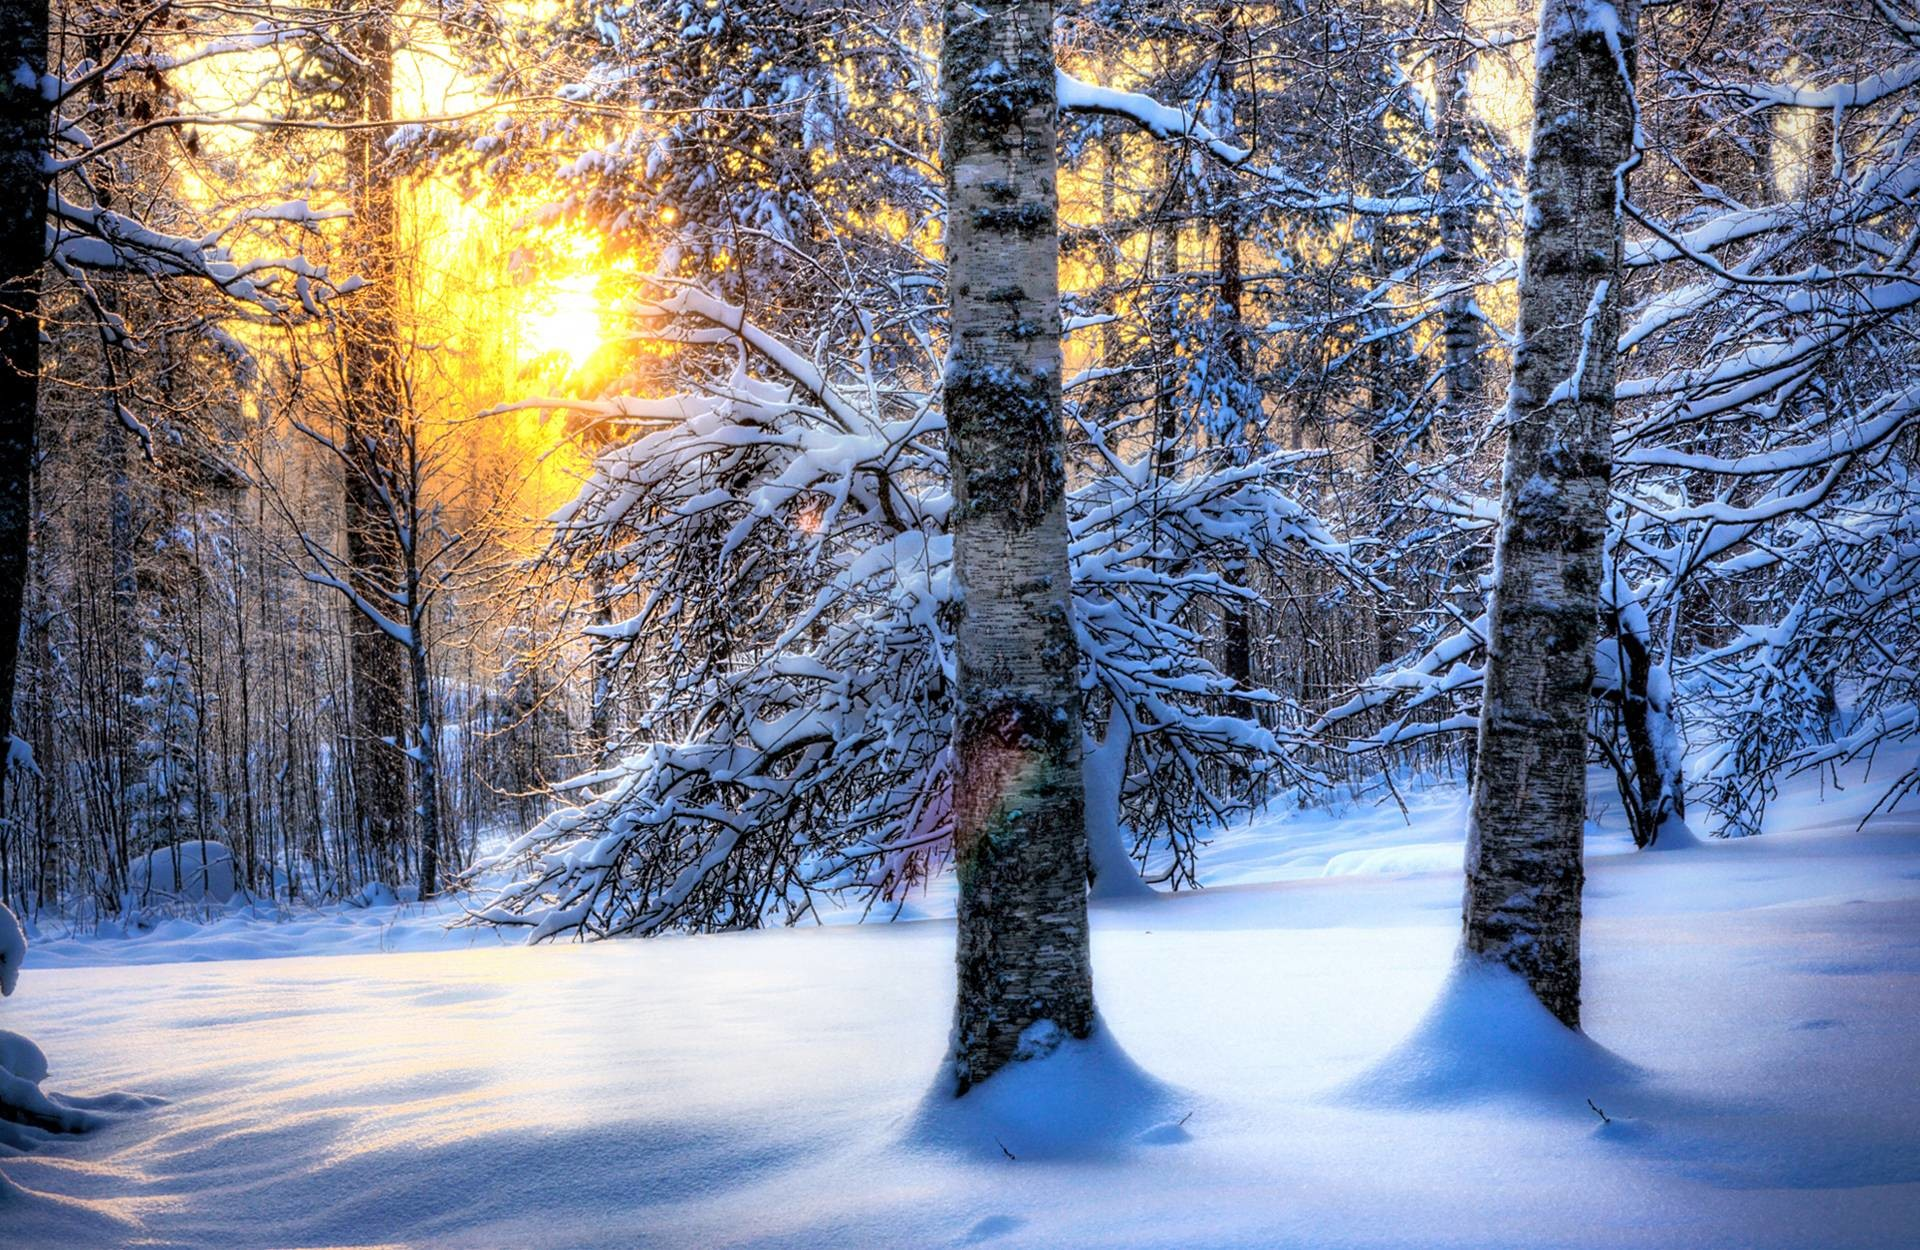 1920x1250 Free winter desktop wallpaper downloads.